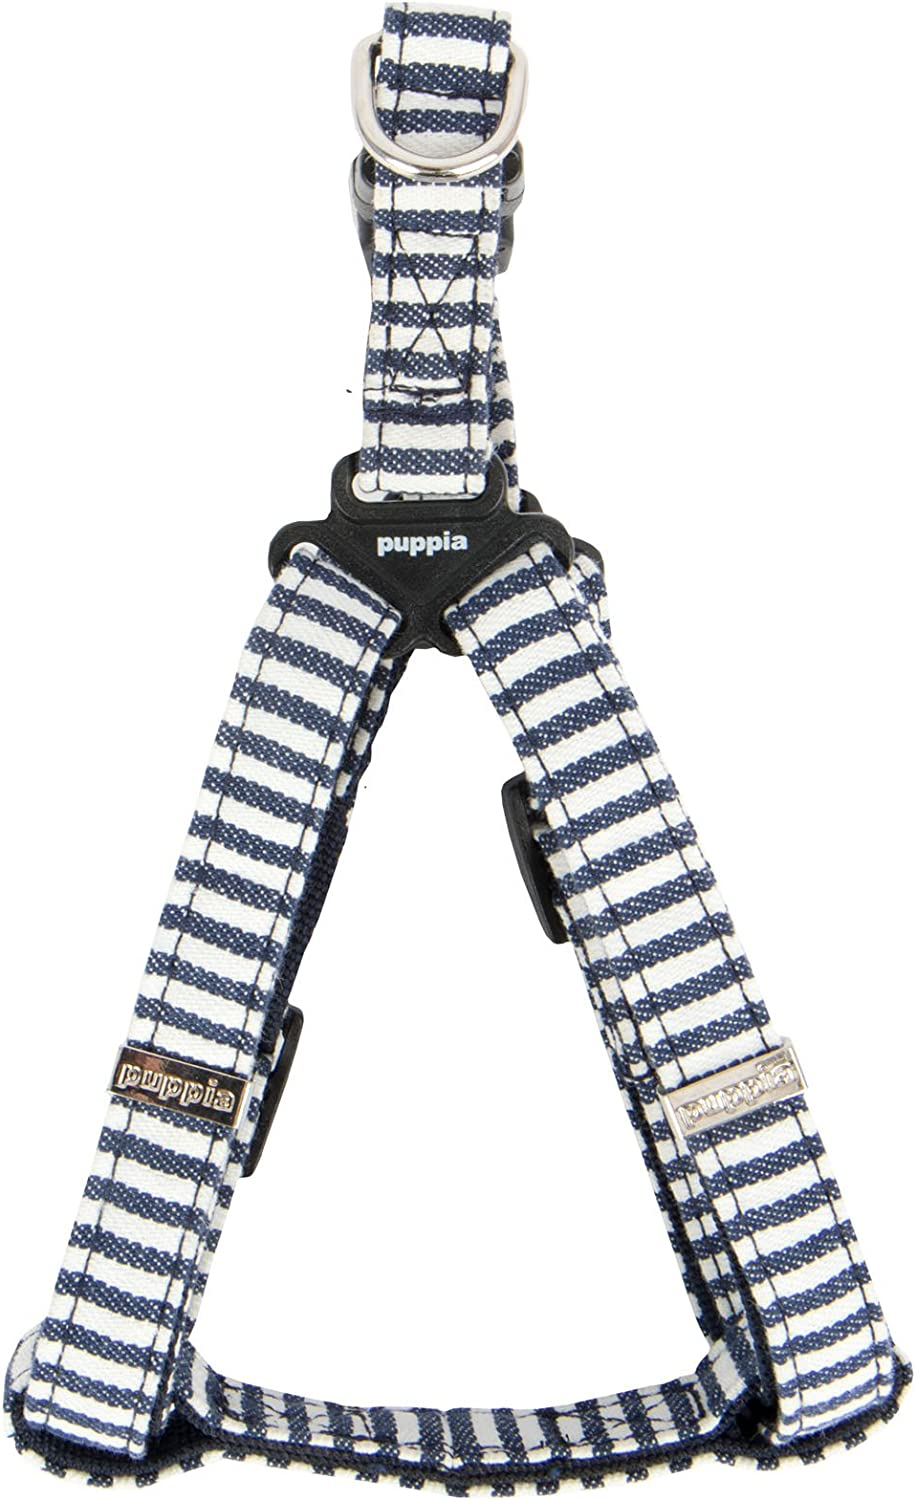 Dog Puppy Harness Striped Navy Bobby Puppia Choose Size